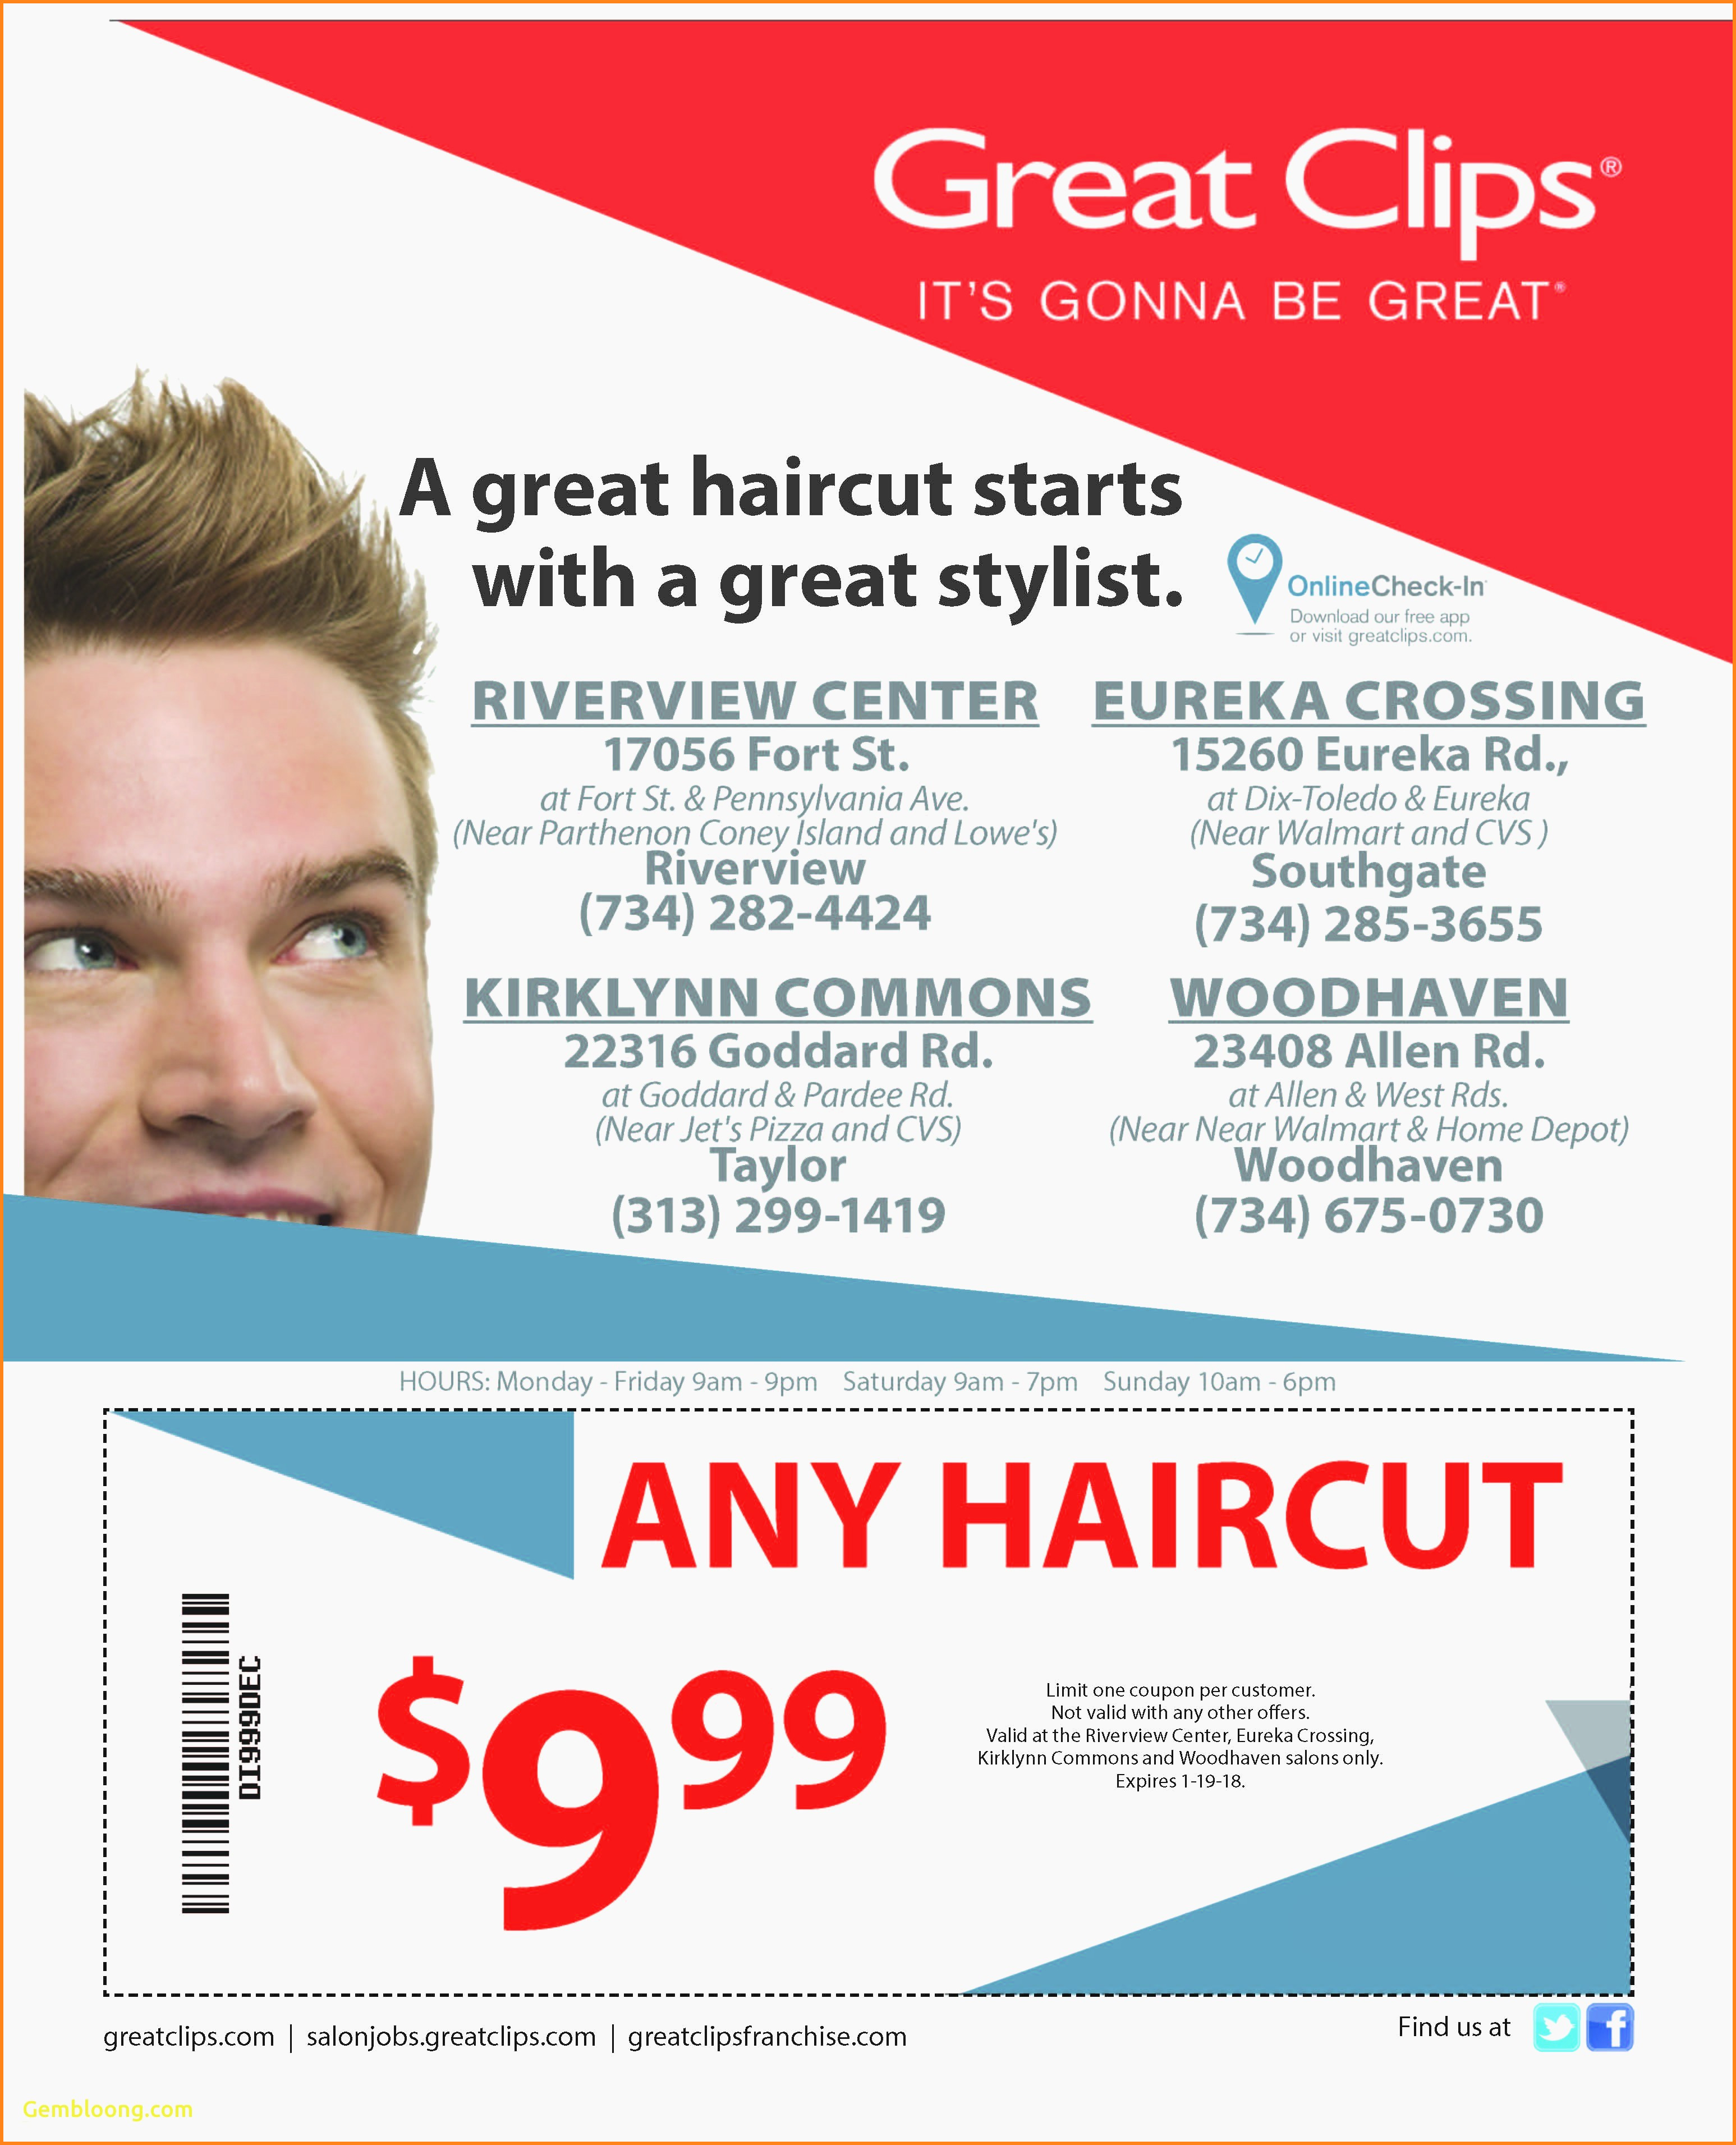 Top Haircuts For Men Coupons Image Of Haircuts Tutorials 257101 - Great Clips Free Coupons Printable